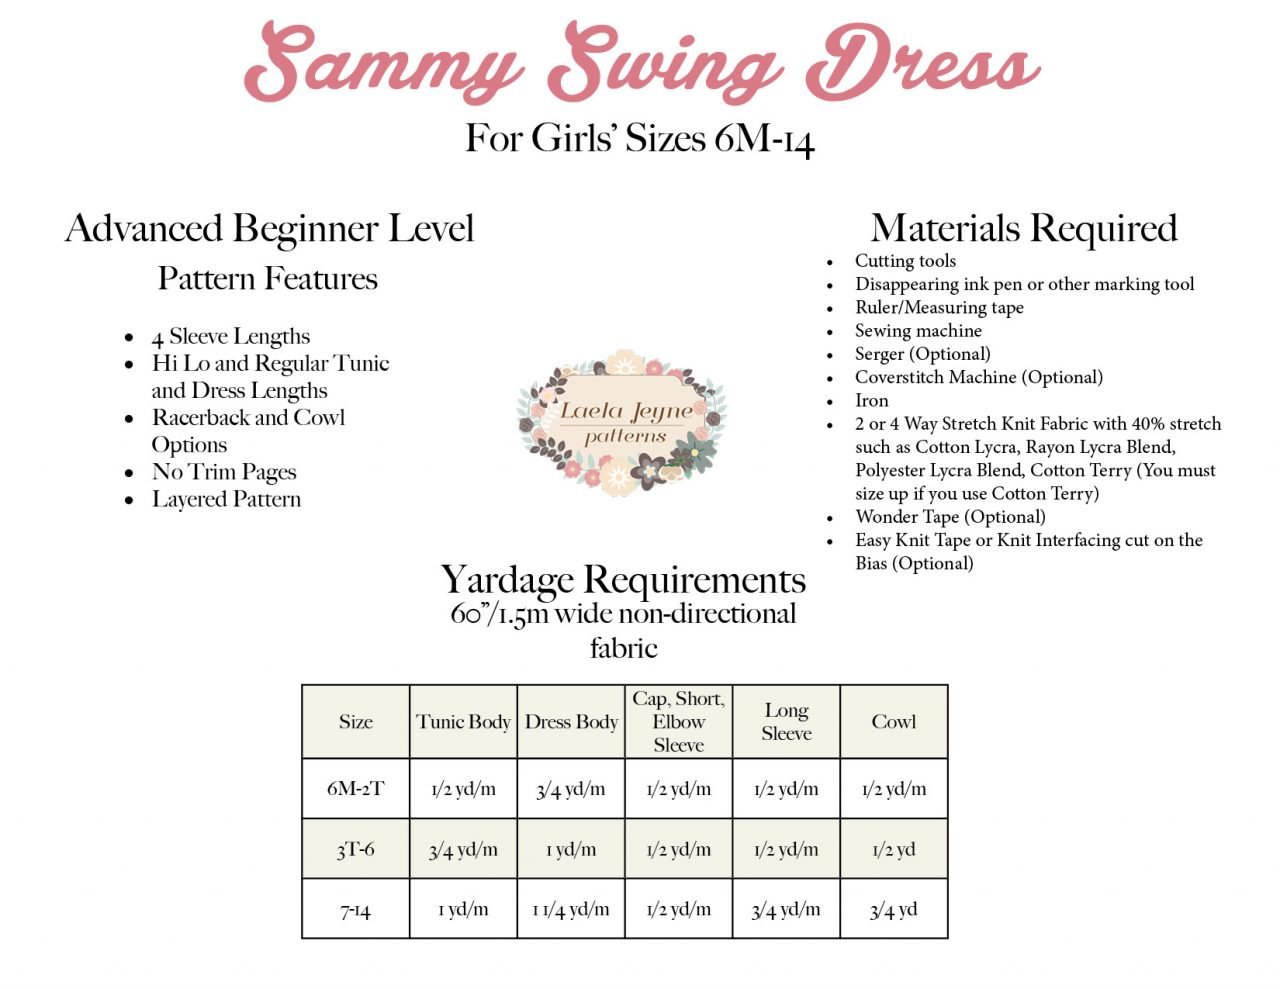 Girls Swing Dress Sewing Pattern Information